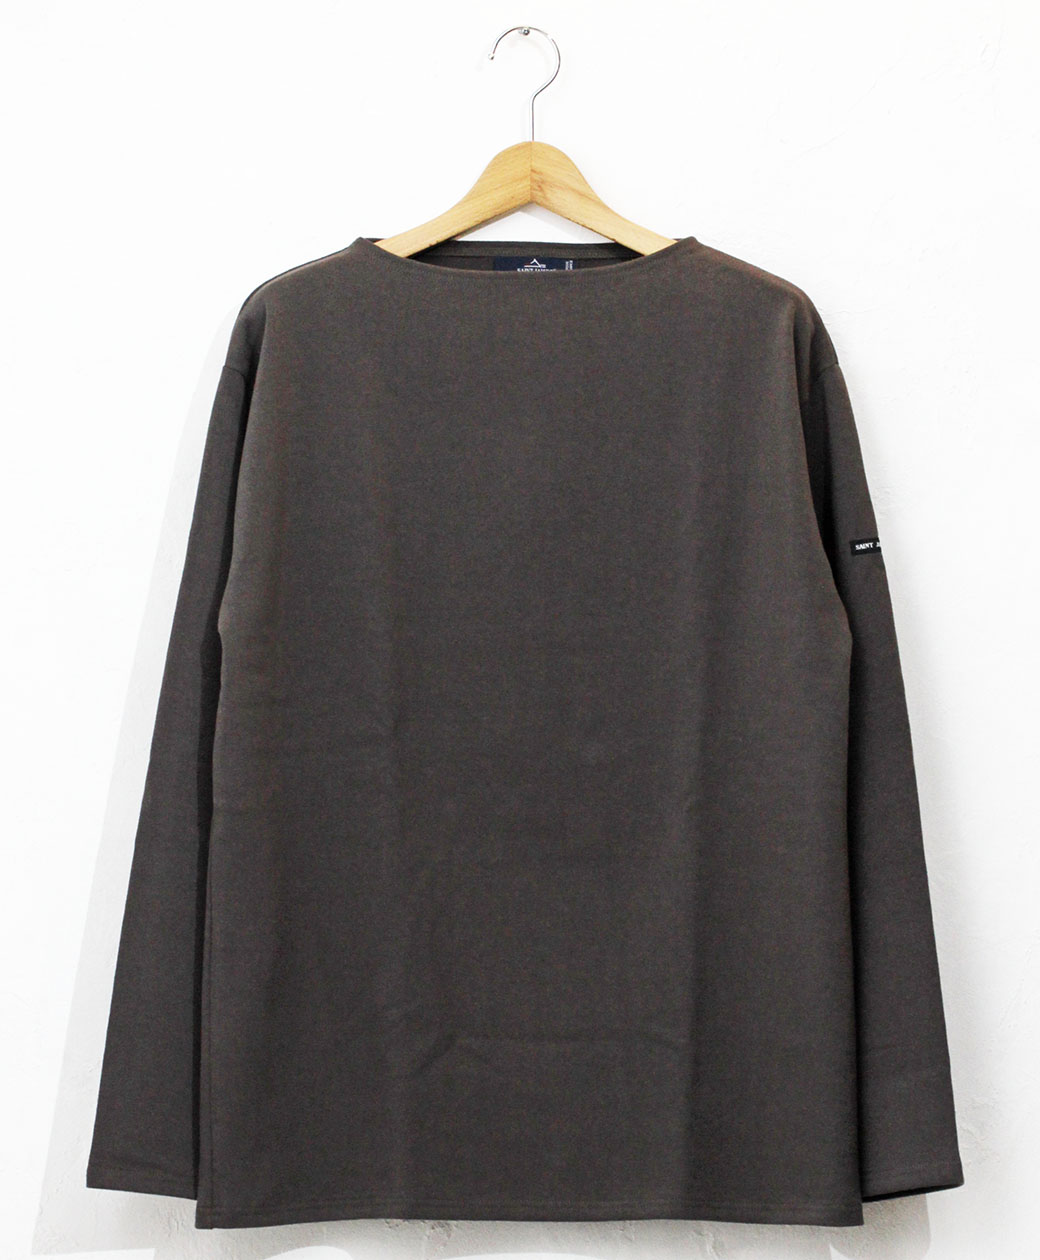 SAINT JAMES OUESSANT SOLID(TAUPE)